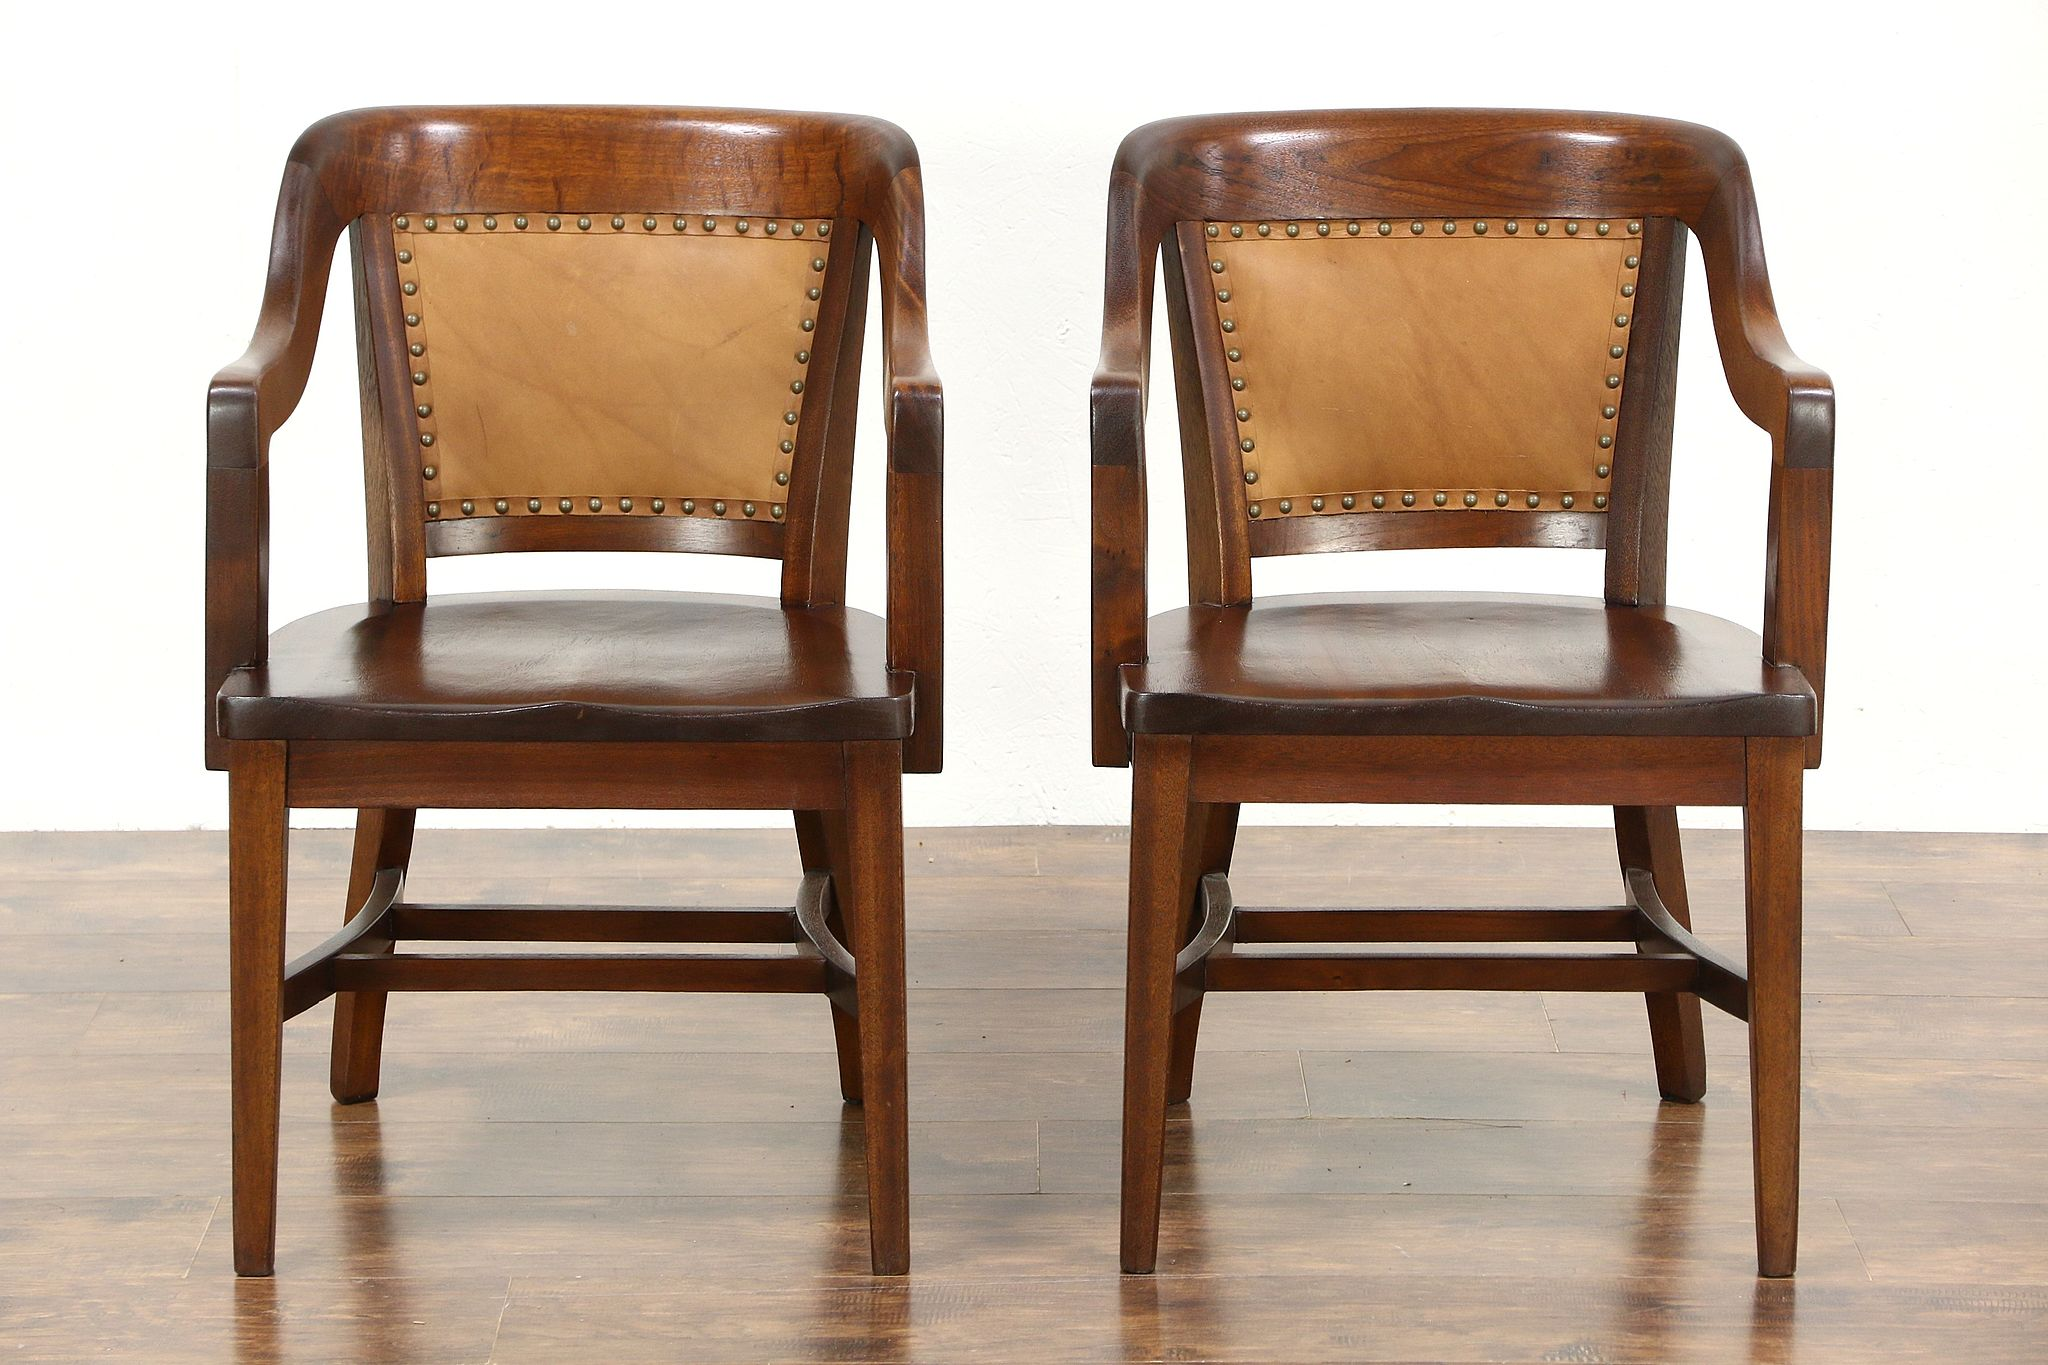 SOLD Chairs fice and Desk Harp Gallery Antiques